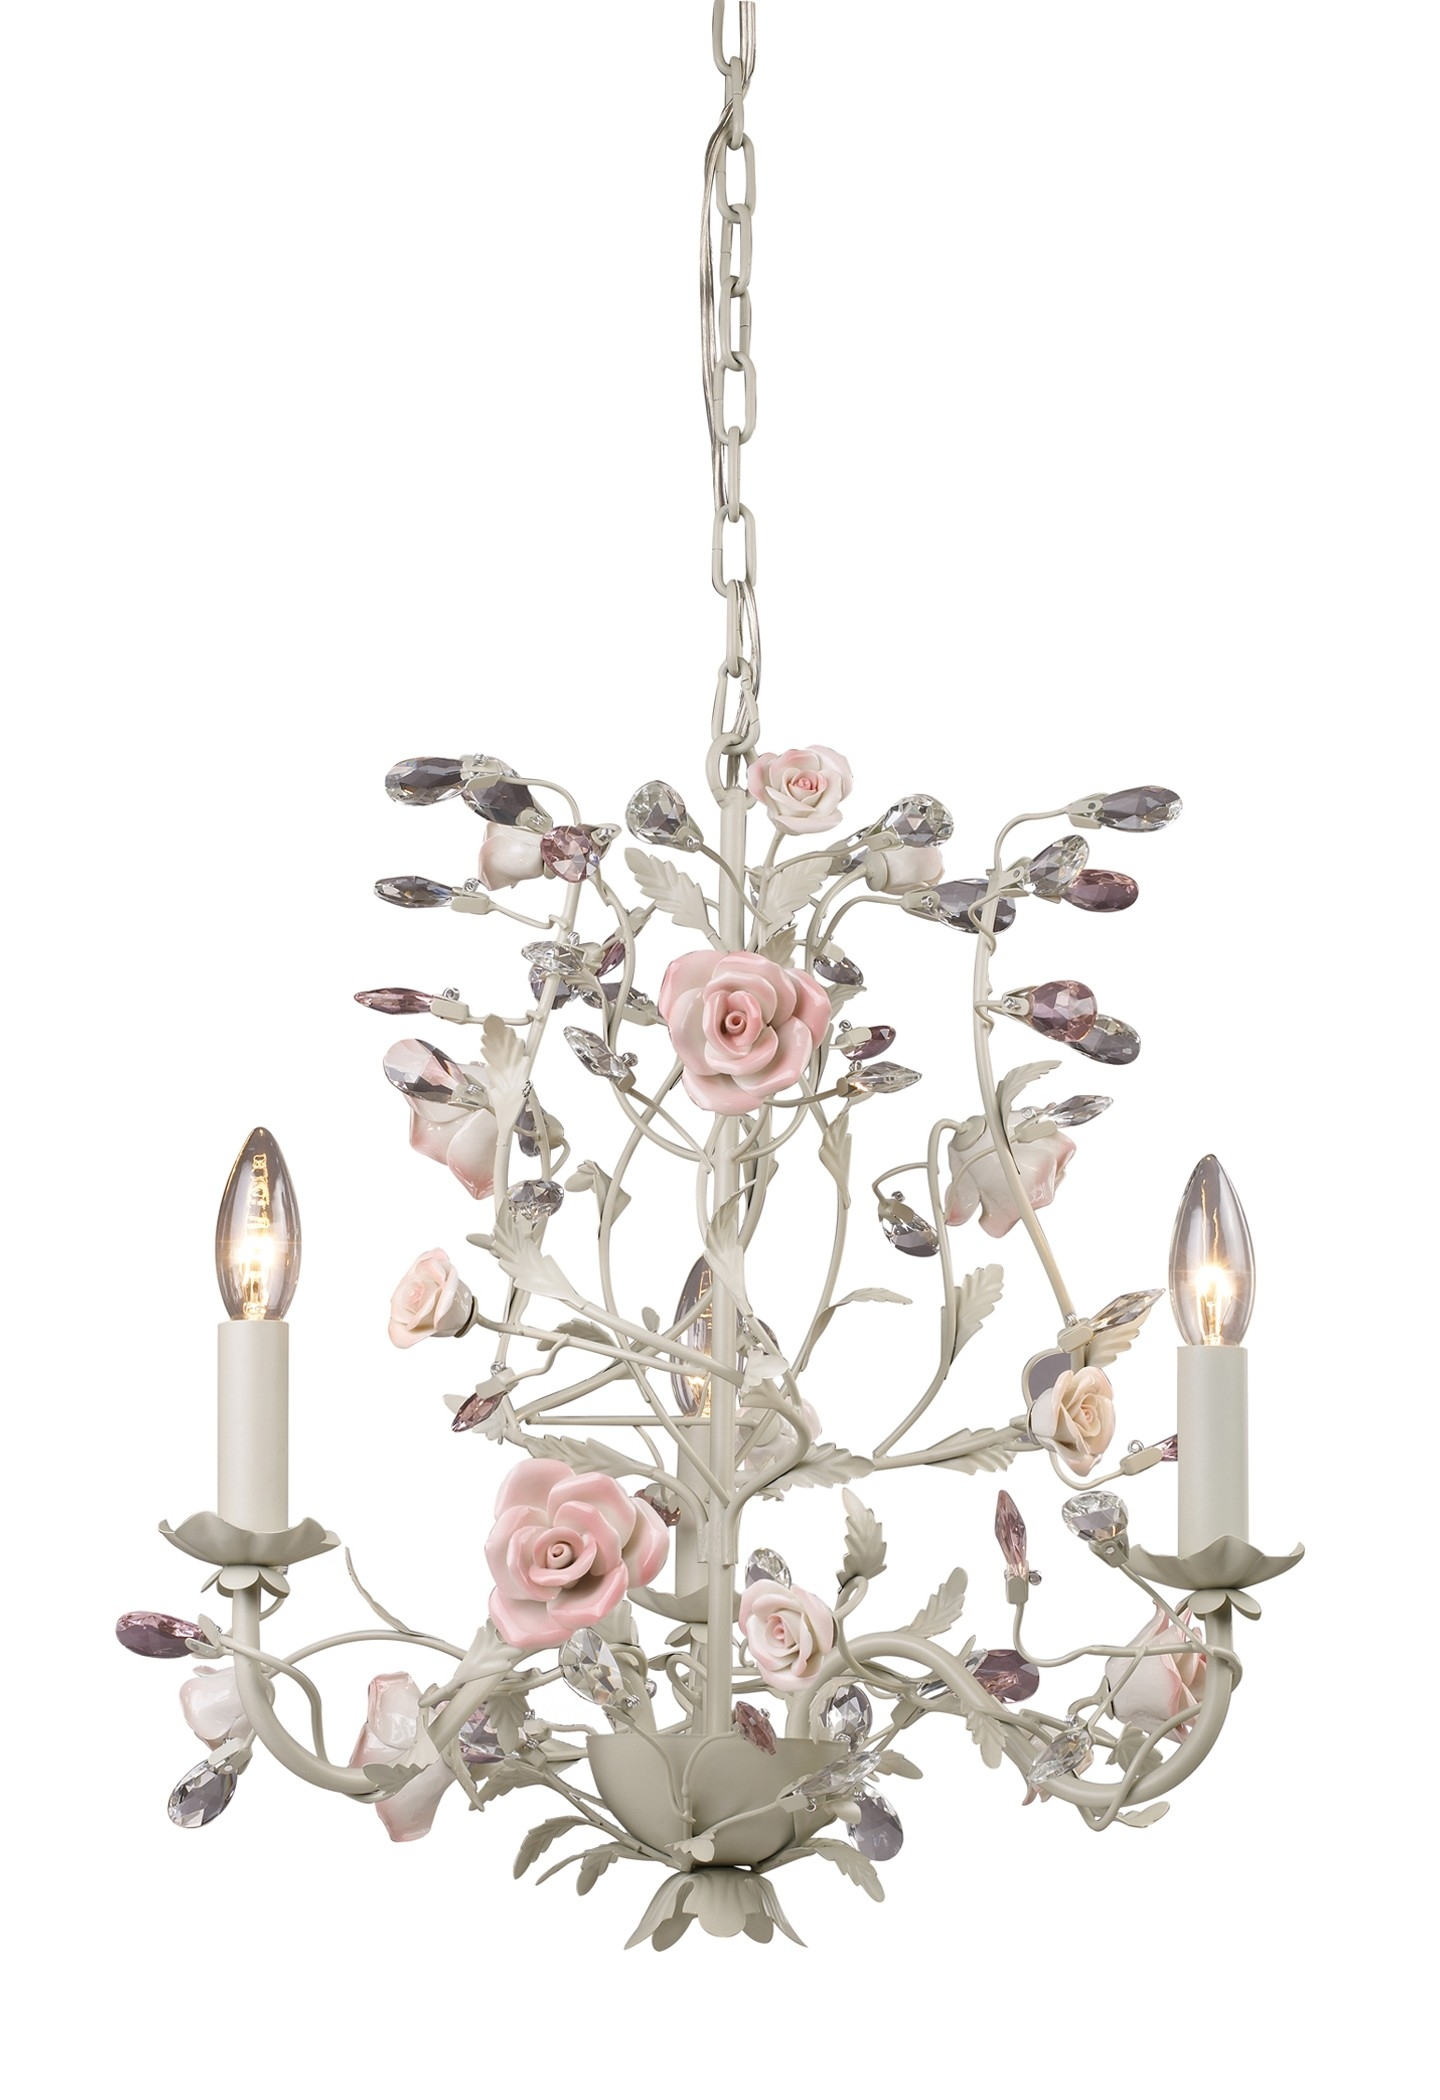 Light Flower Chandelier Would Love This For My Office With Cream Crystal Chandelier (Image 10 of 15)